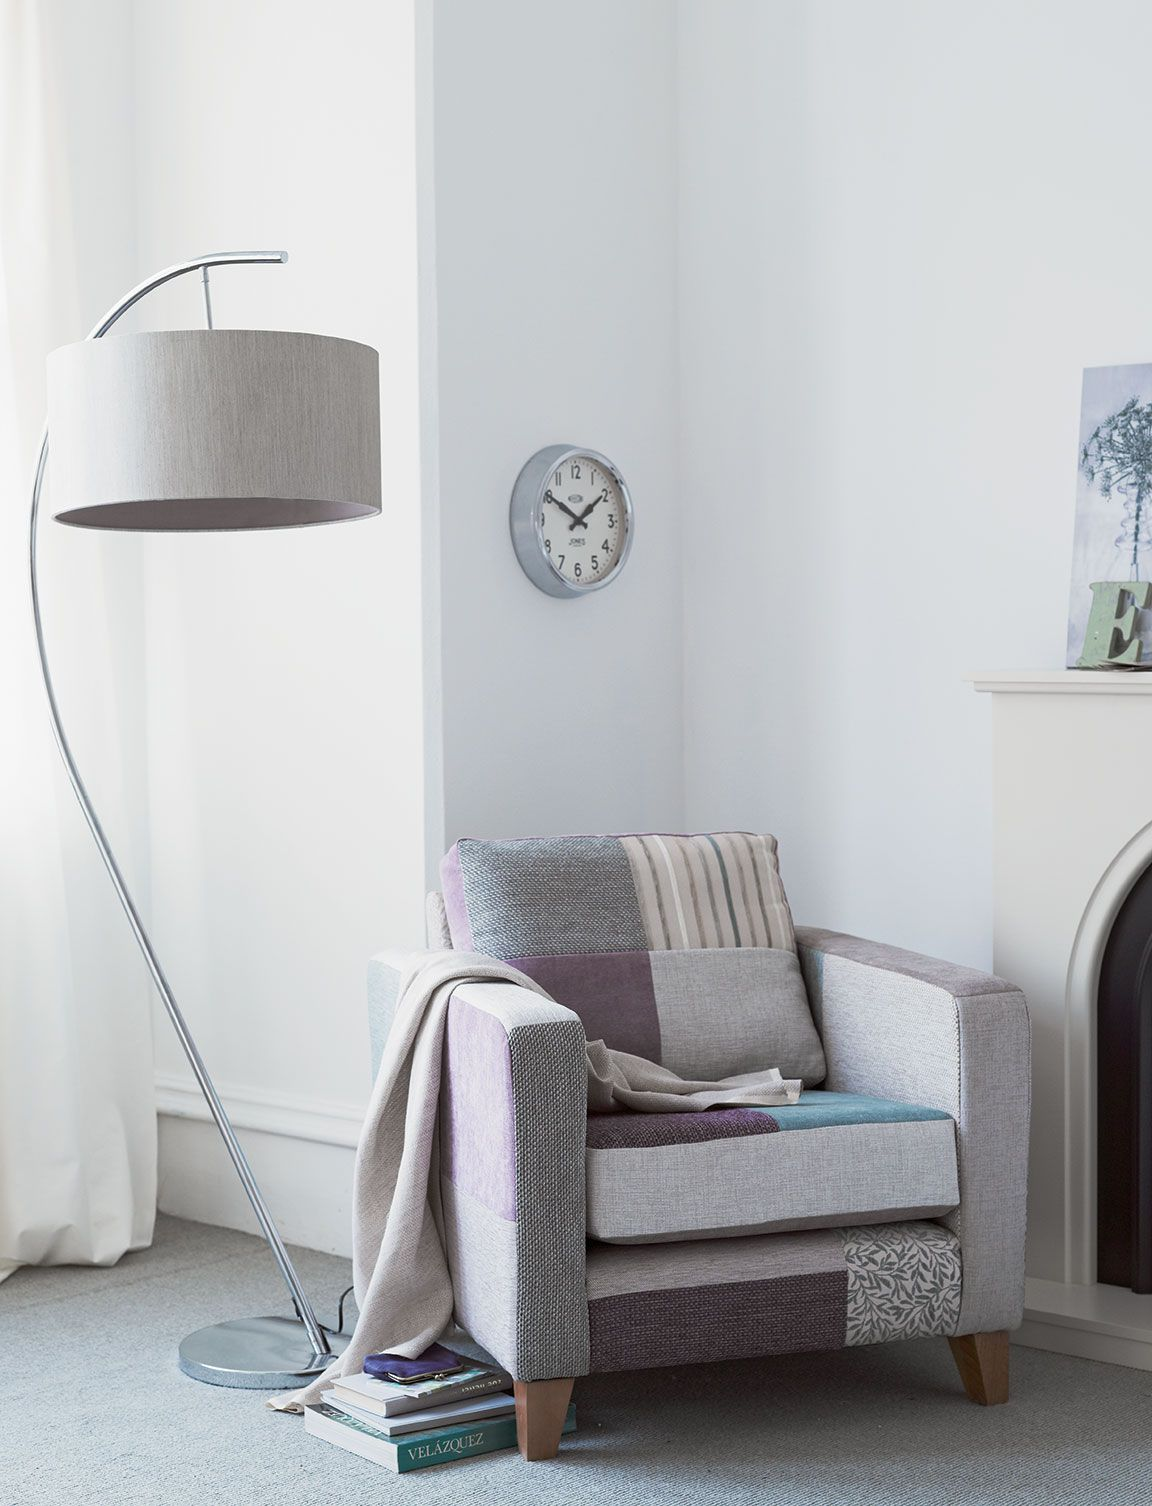 Our Arc Floor lamp provides an innovative and contemporary look to ...